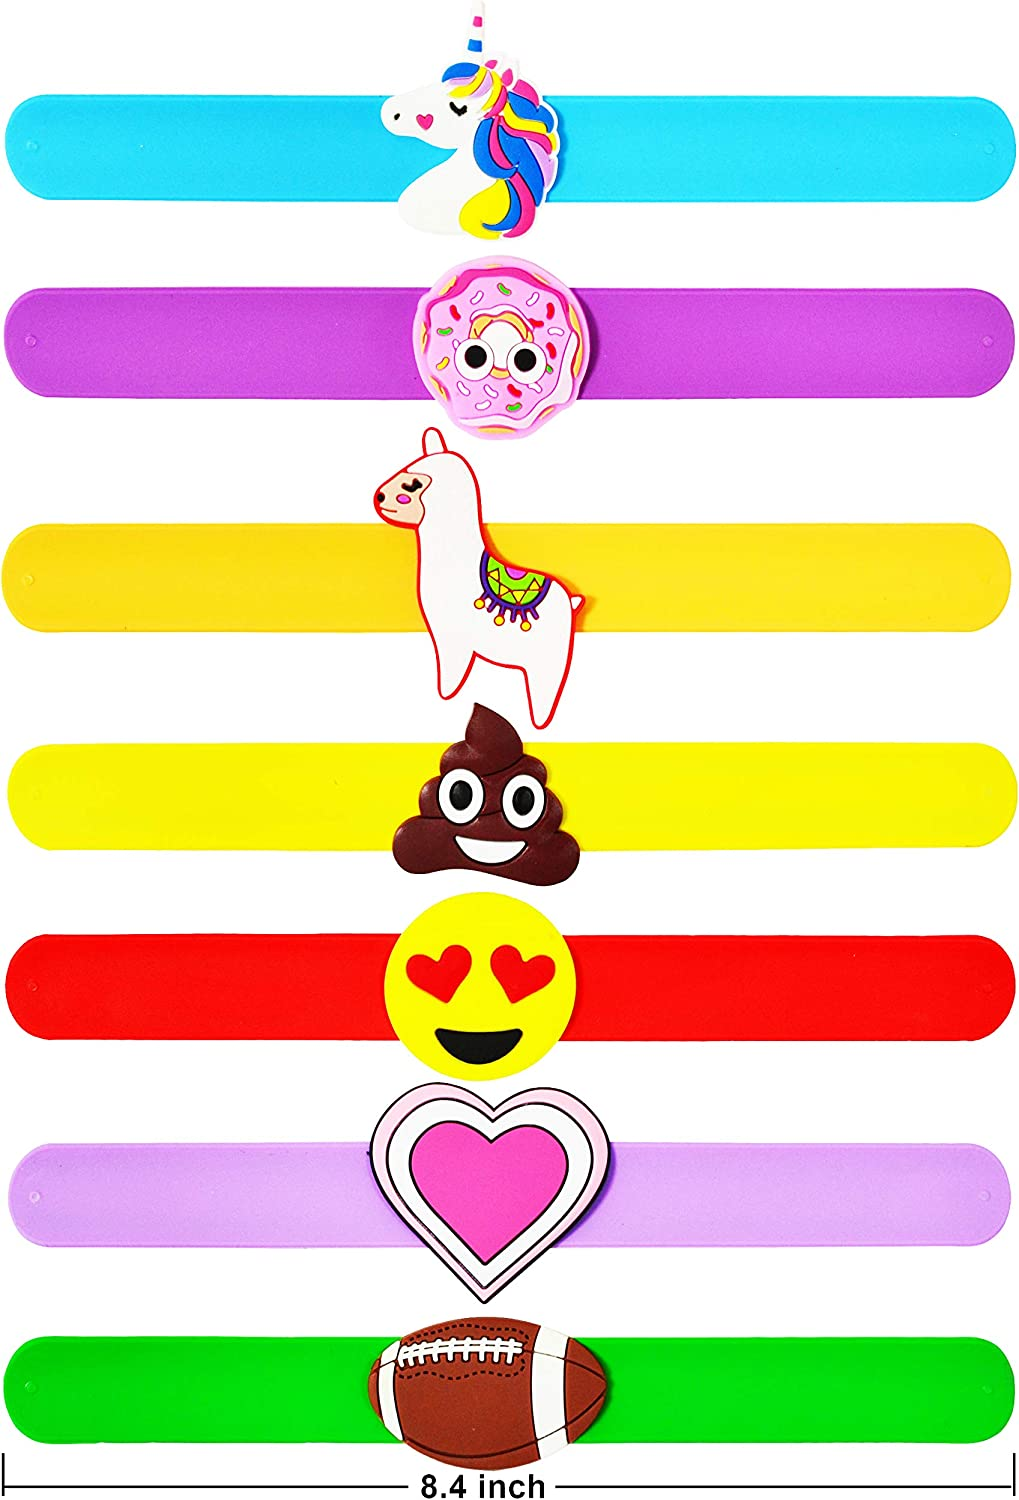 28 pcs Slap on Bracelets and Cards with 7 designs for Kids Party Favor Valentine/'s Greeting Cards for Kids School Valentines Day Cards Classroom Exchange Prizes